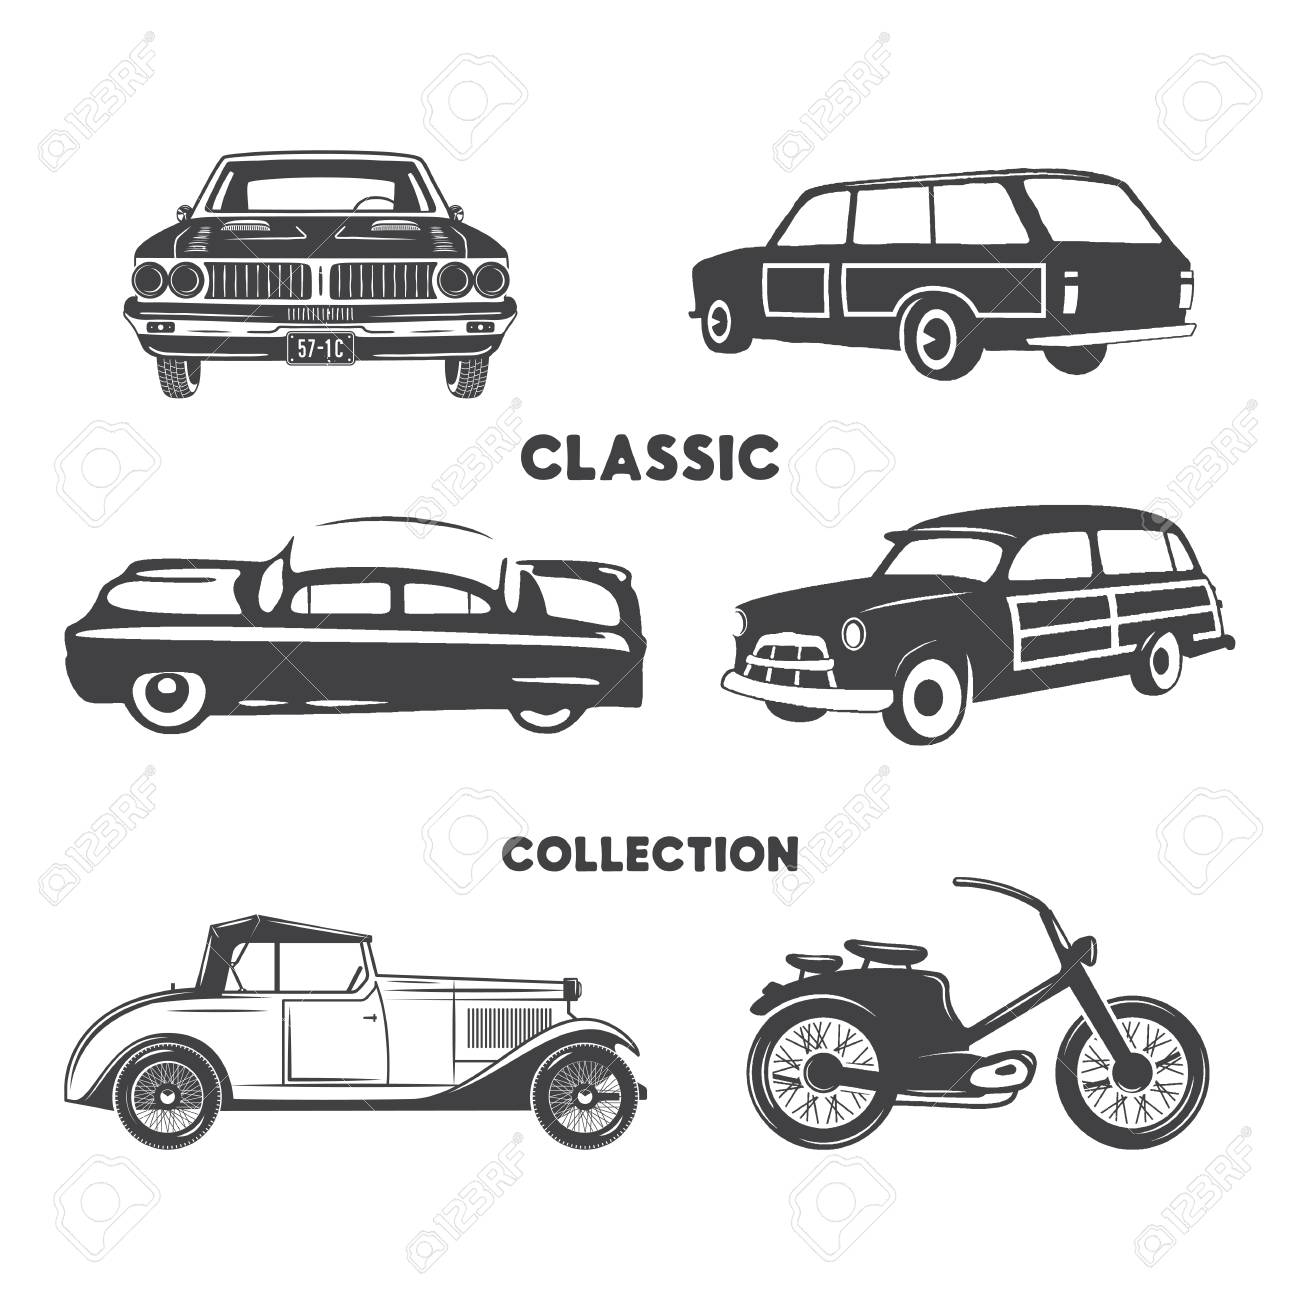 Classic cars vintage car icons symbols set vintage hand drawn cars muscle